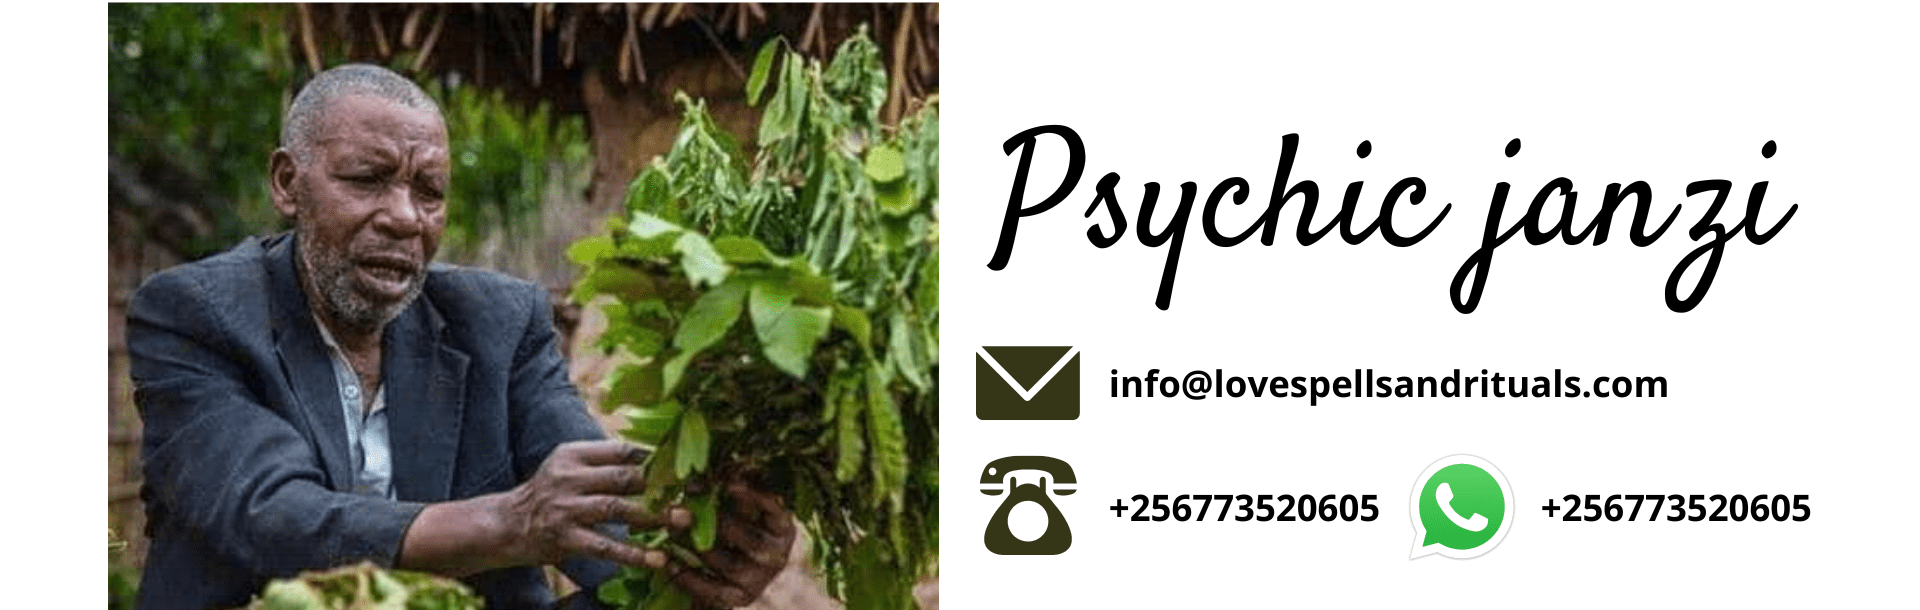 Lost love spells, Money spells, Lottery spells, Court case spells, black magic spells